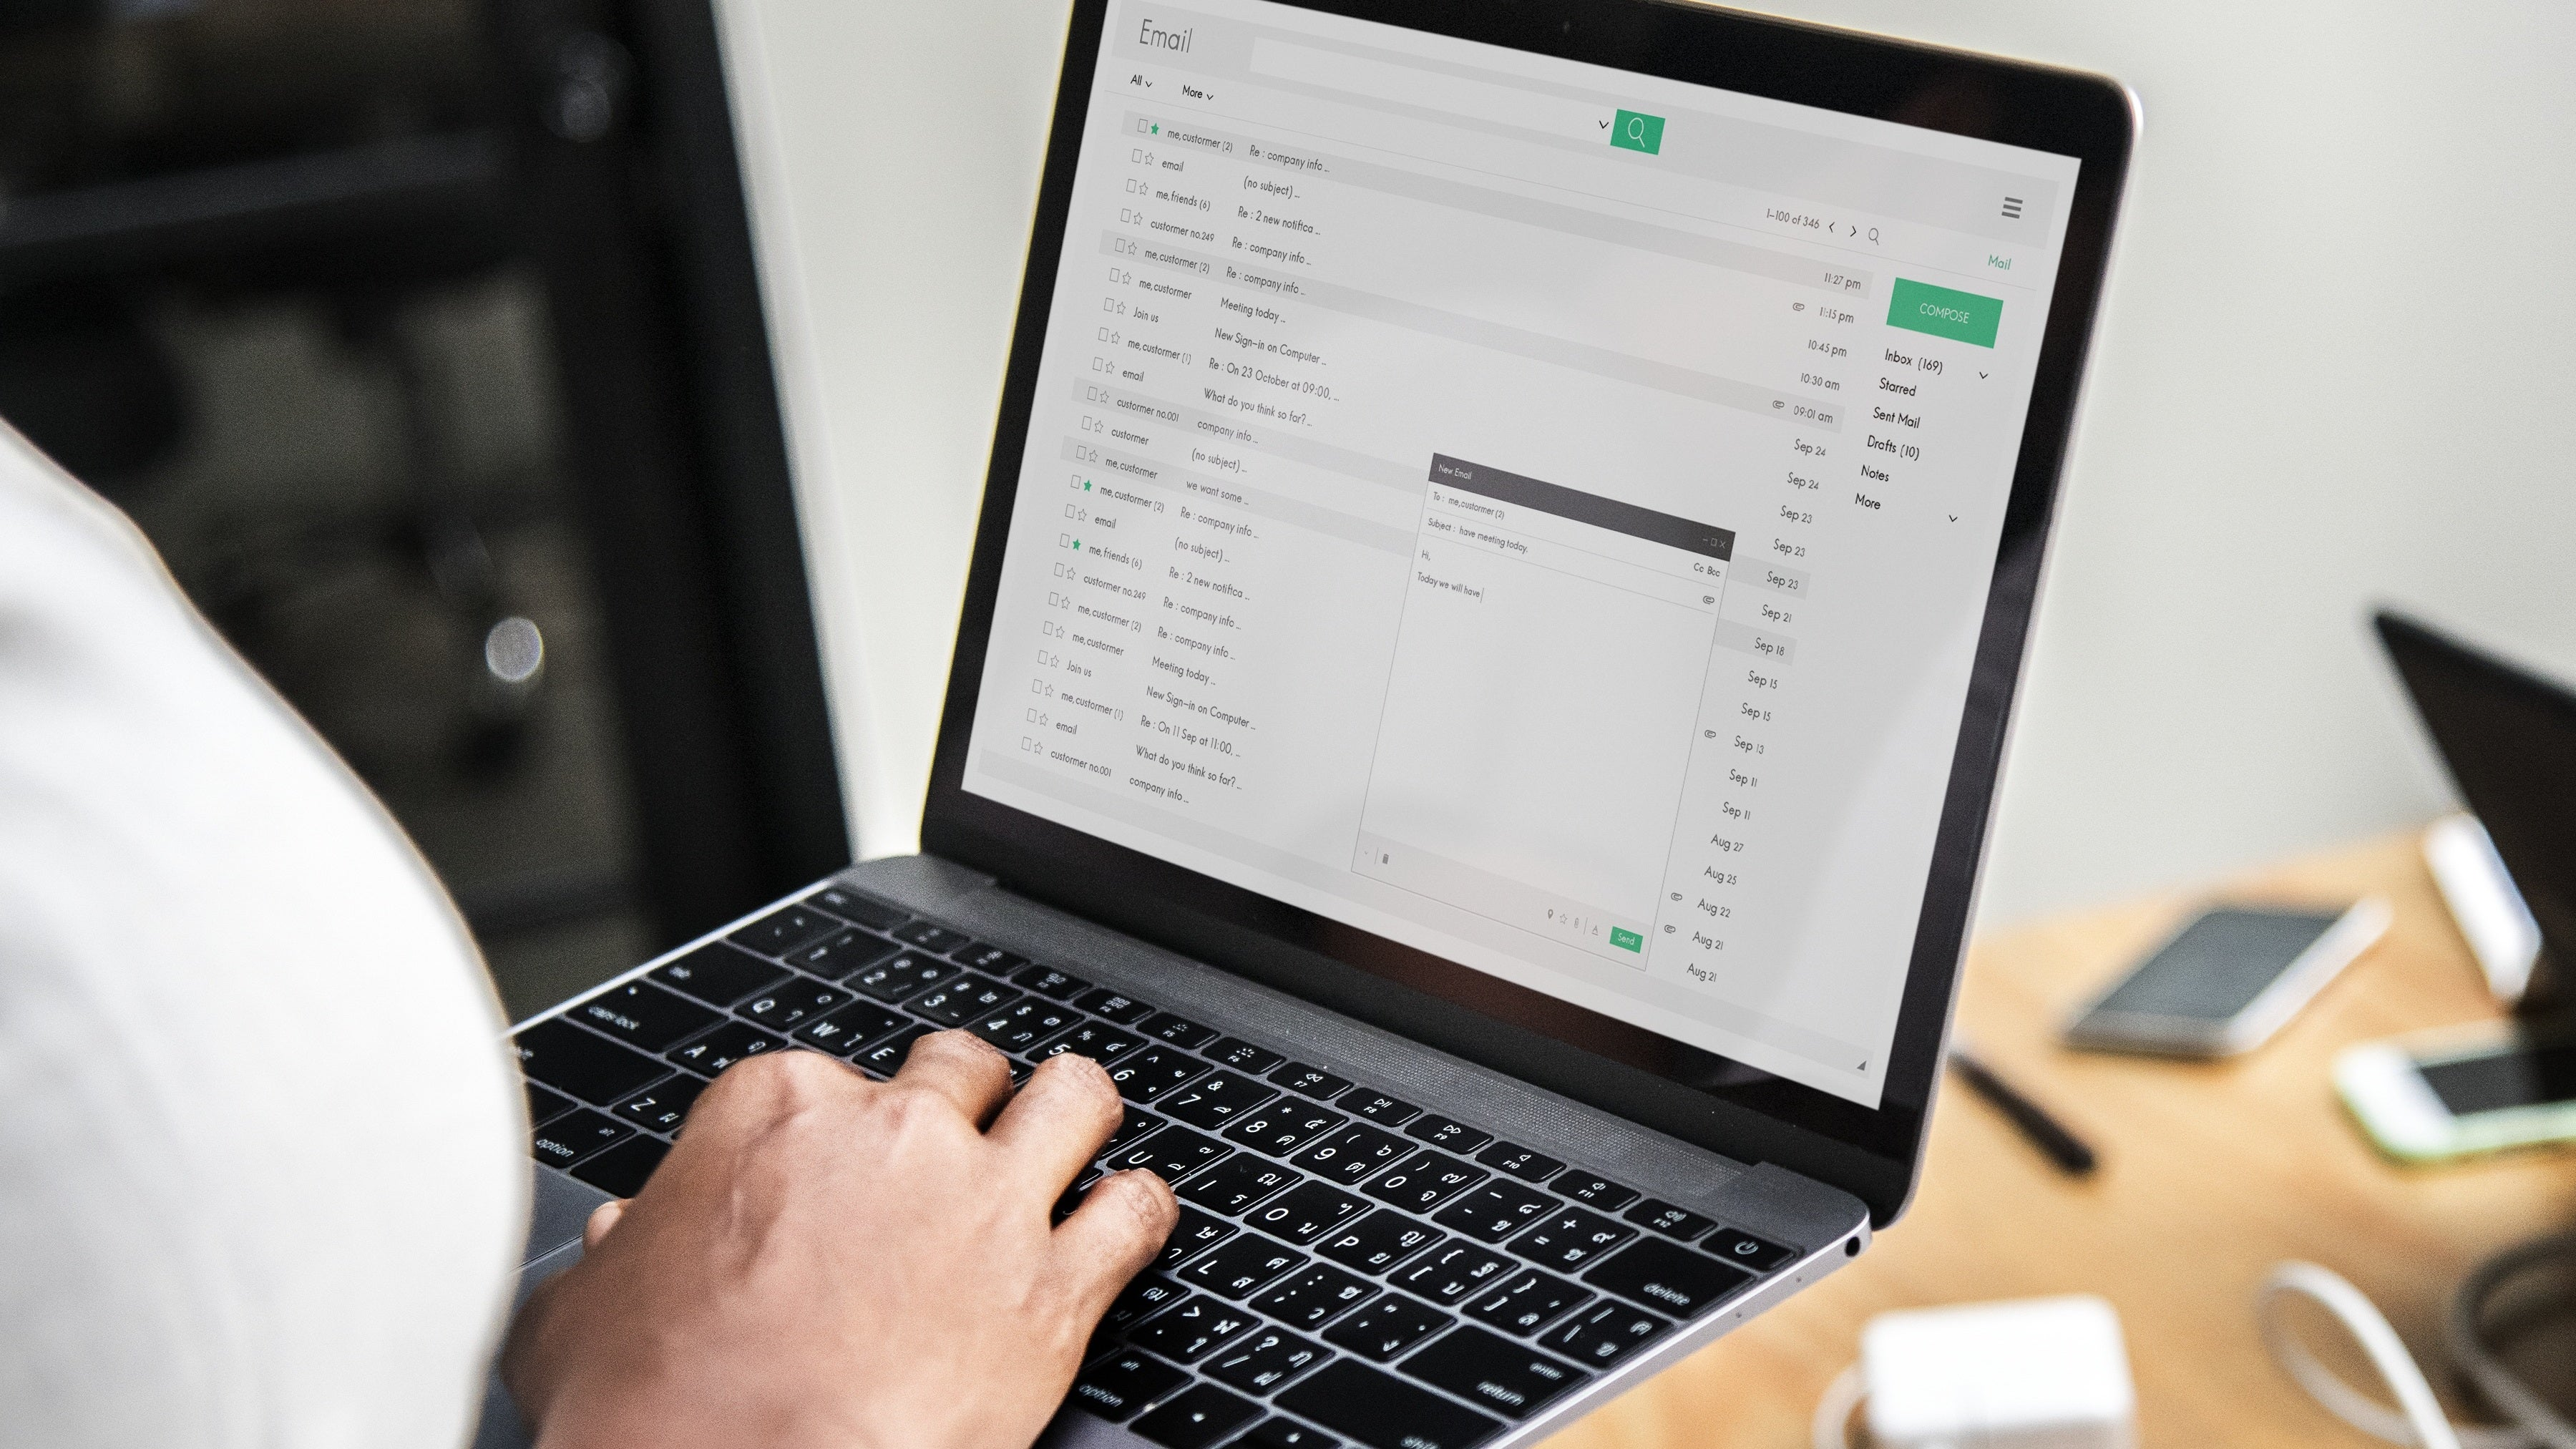 How Do I Recover Old (Or Lost) Emails?